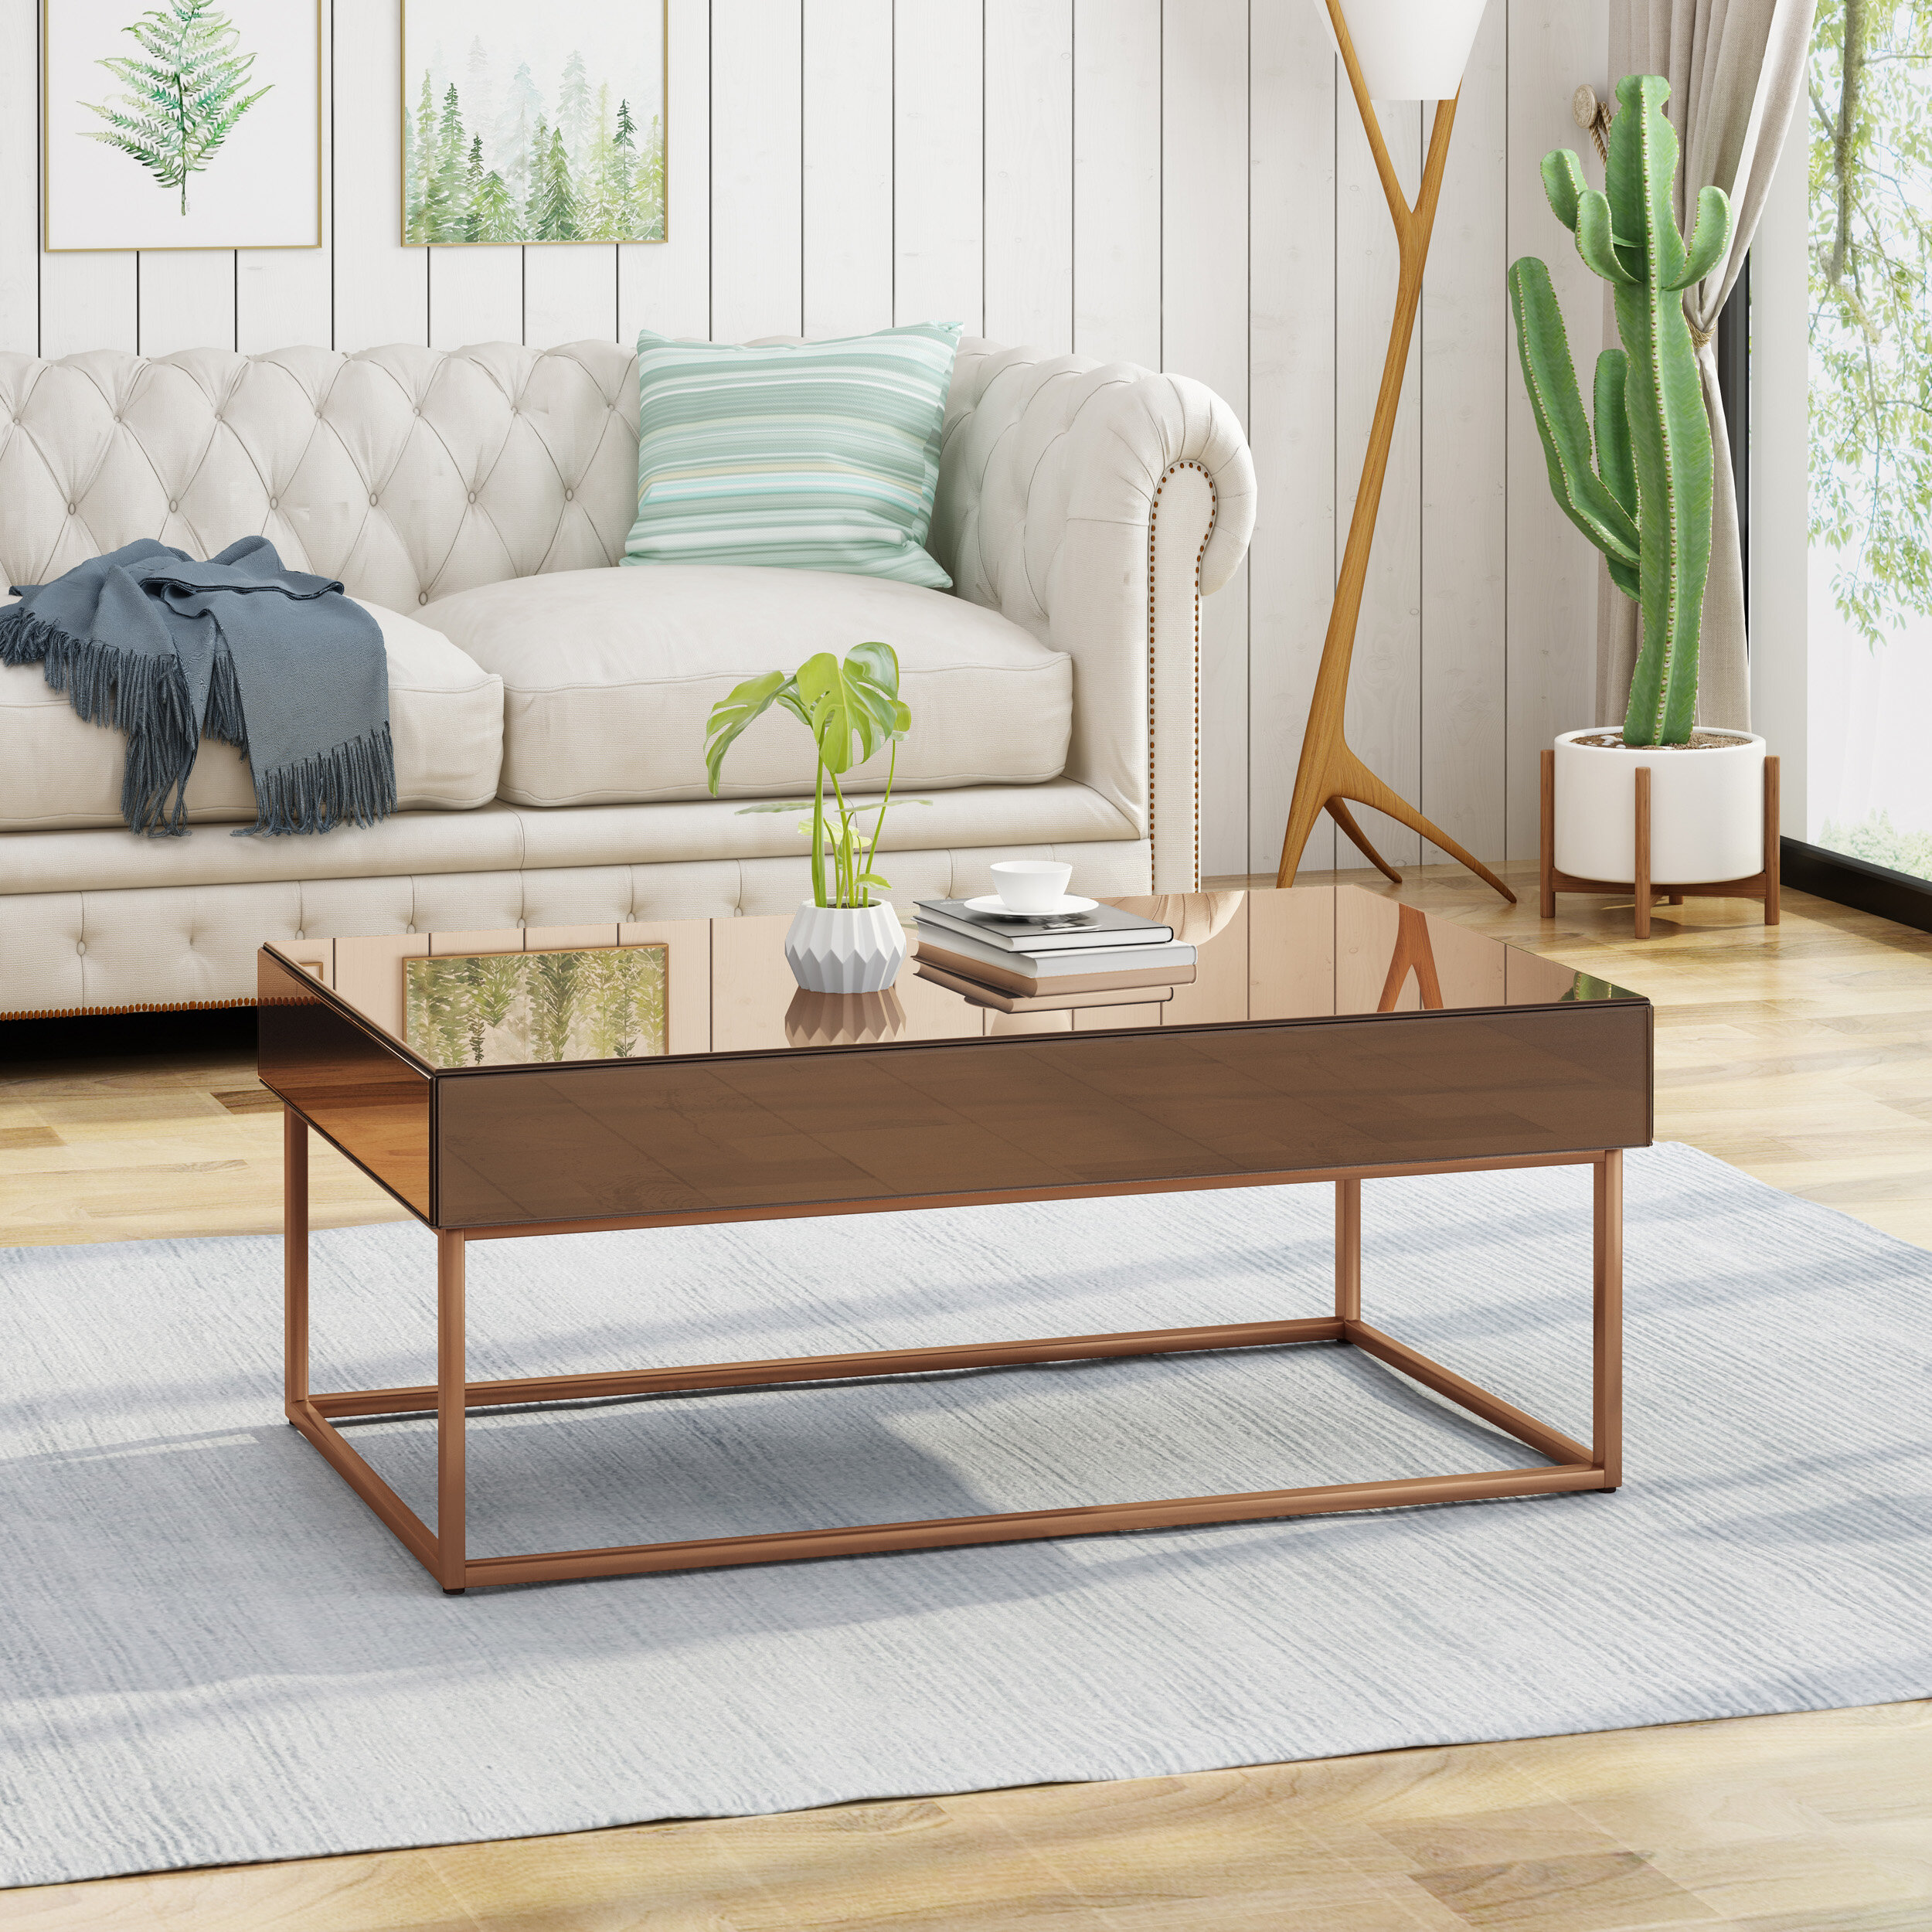 Wrought Studio Mcchristian Modern Glam Coffee Table With Storage